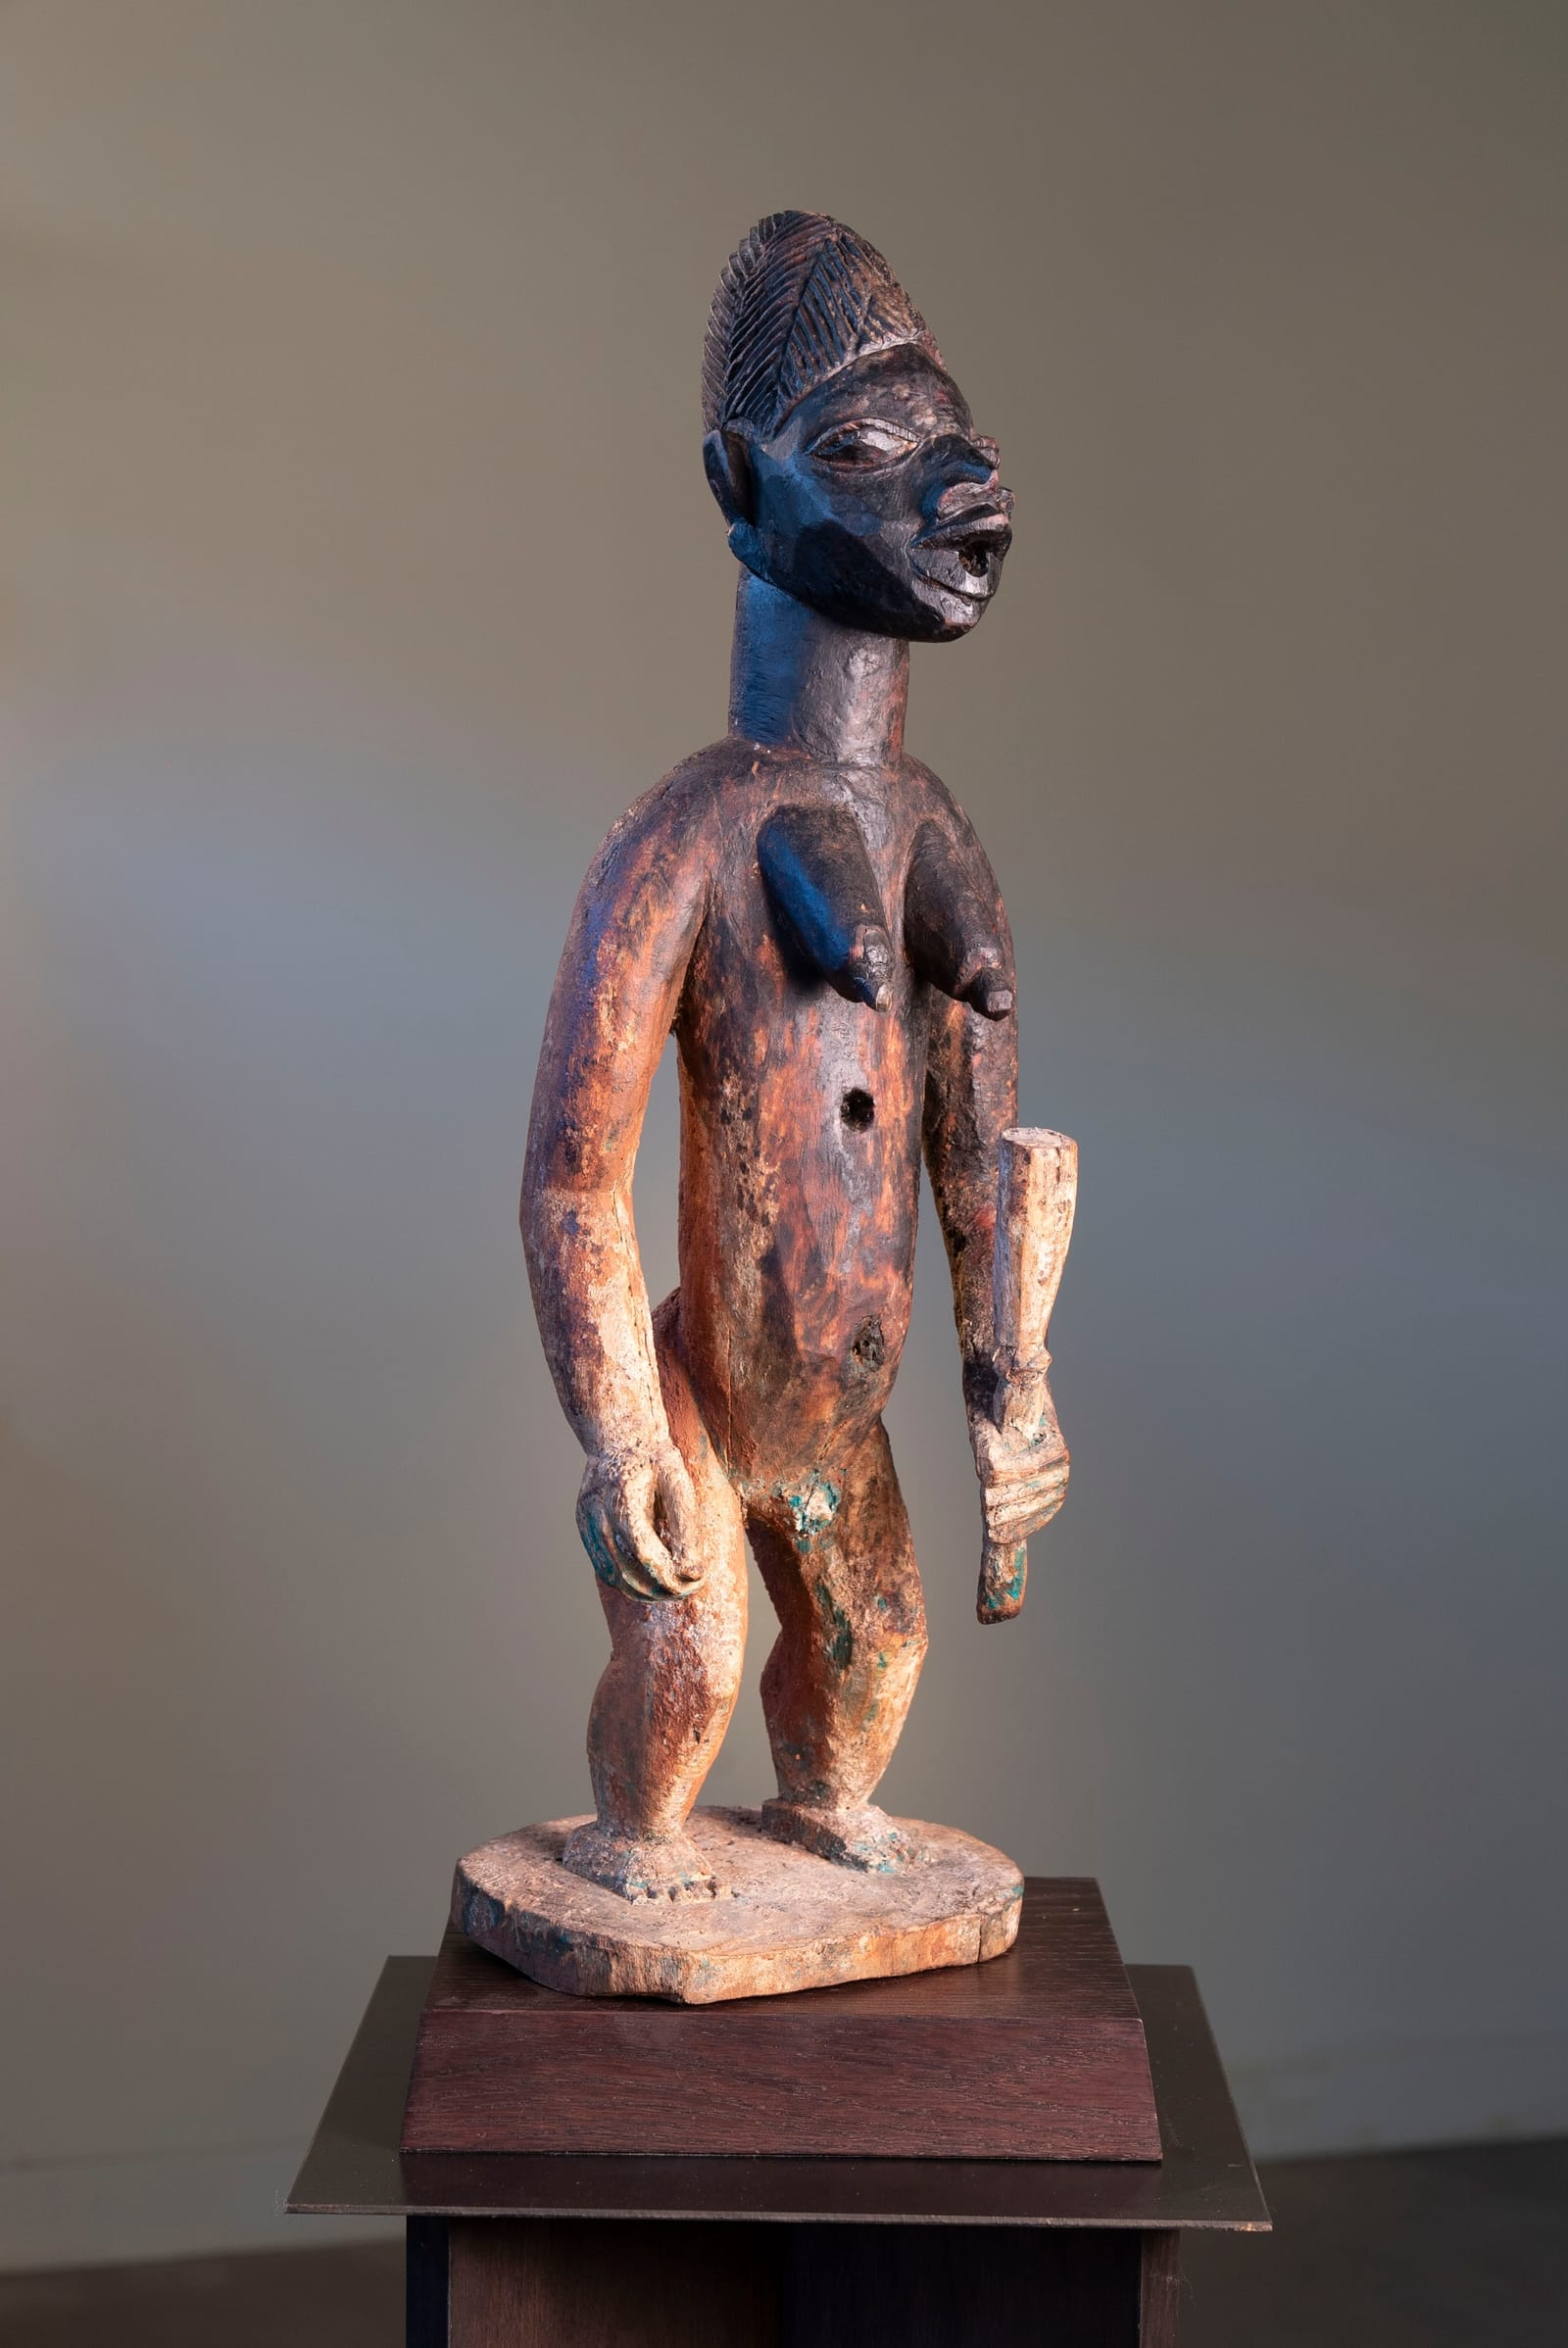 27. Shrine Figure With 'Sweating' Oily Patina